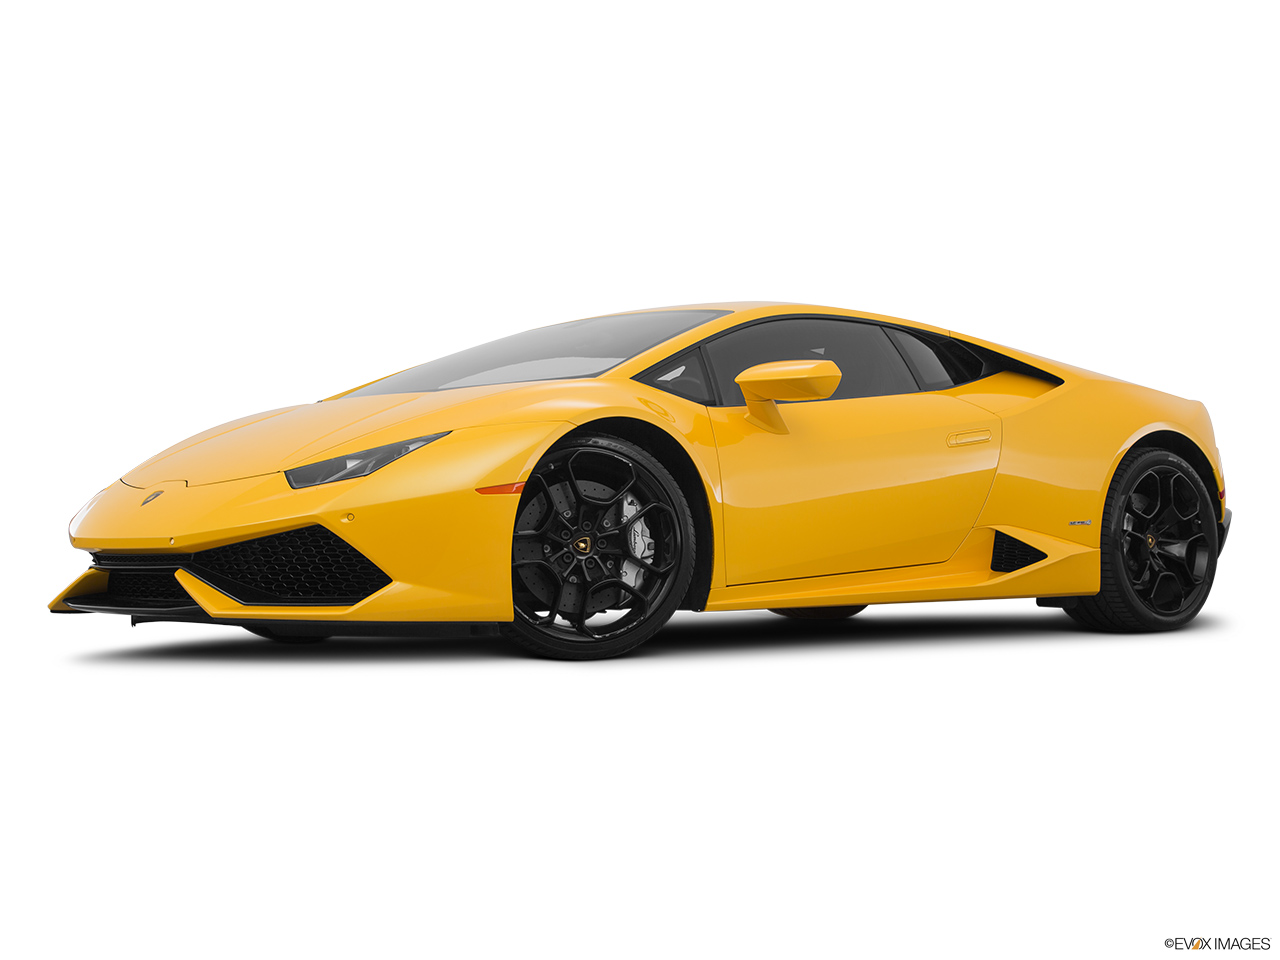 2015 Lamborghini Huracan LP 610-4 Low/wide front 5/8.